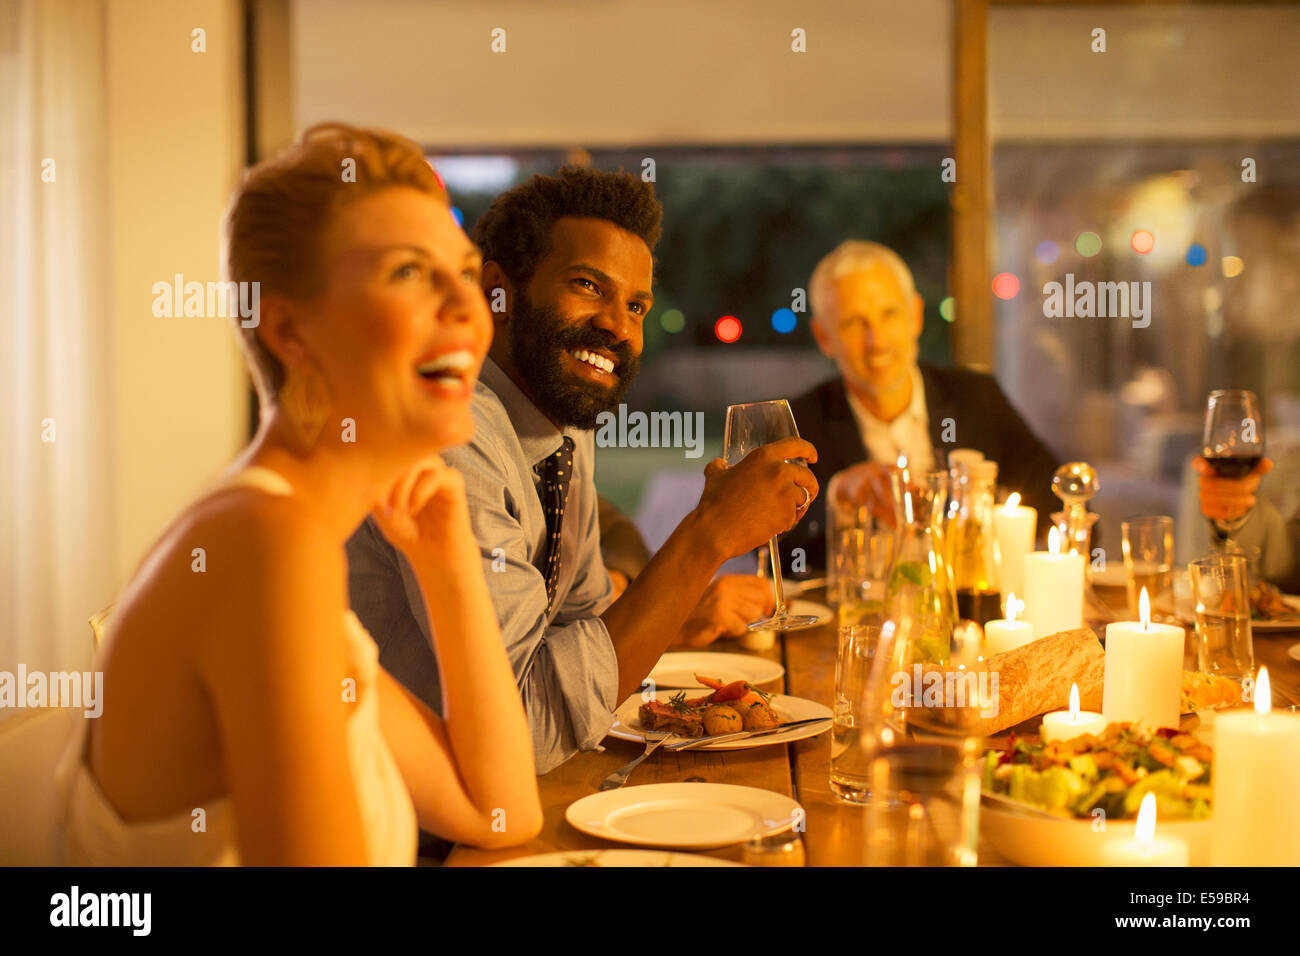 Friends laughing at dinner party Photo Stock